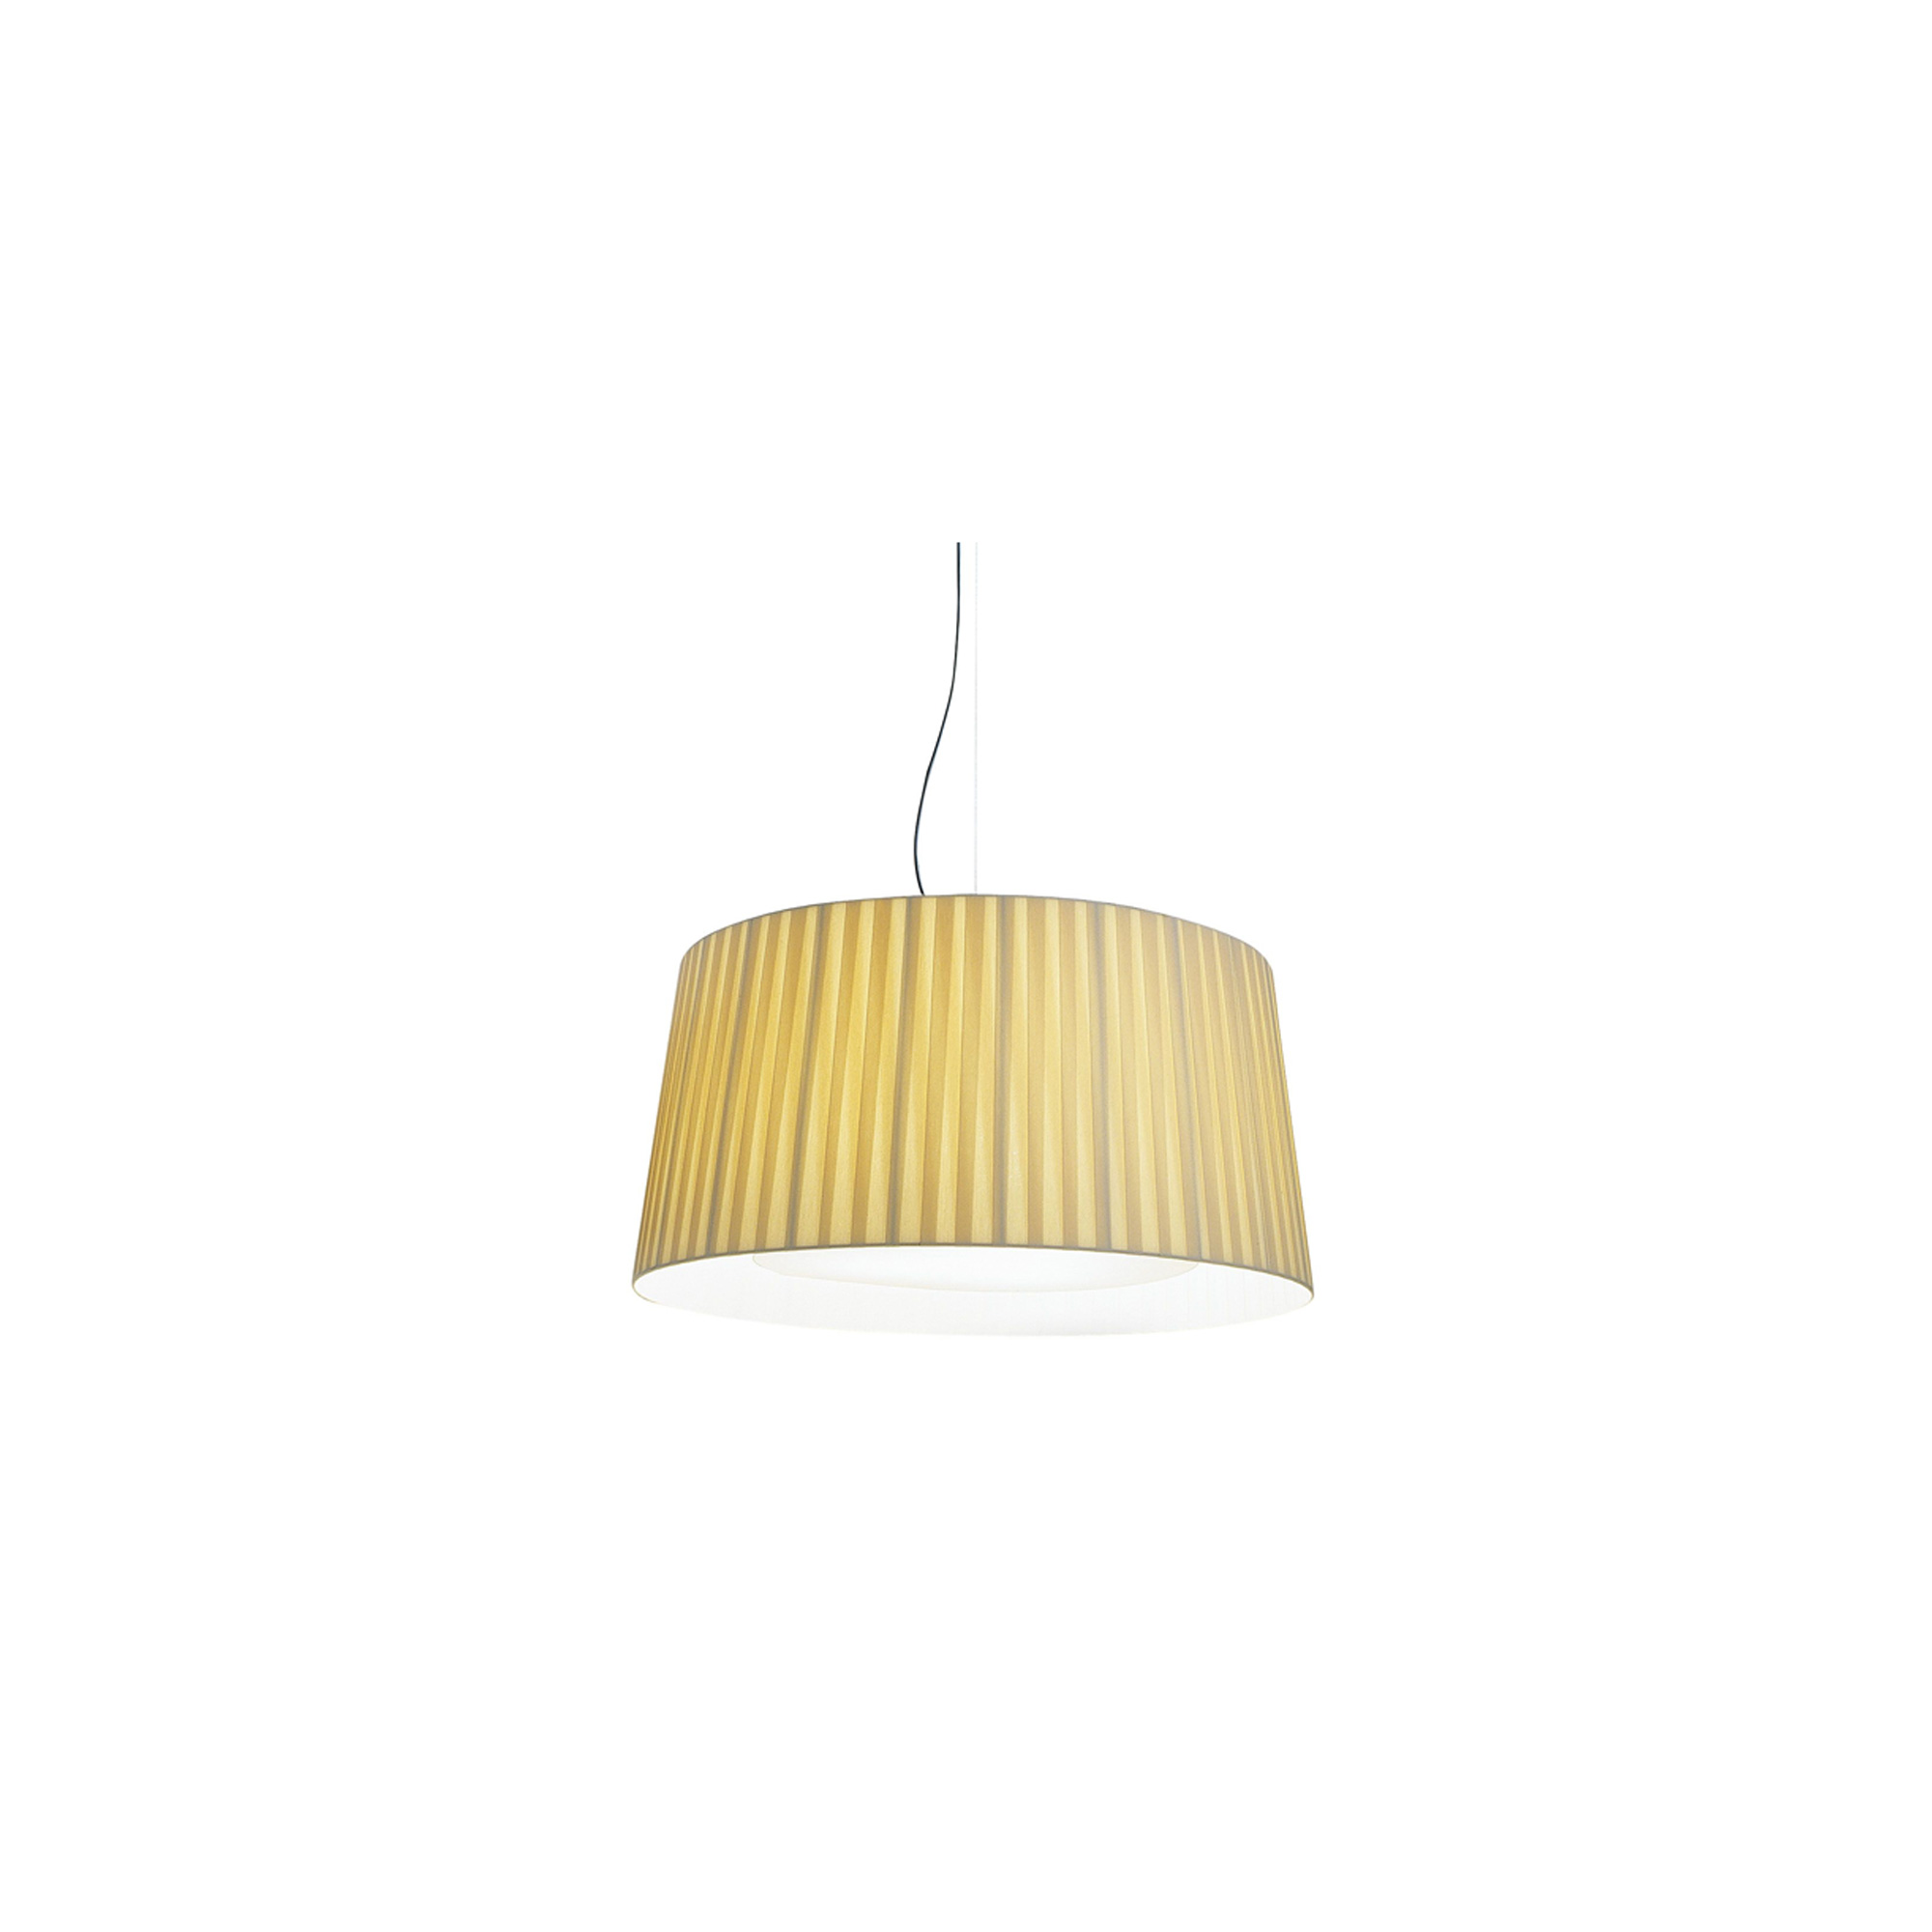 GT7 Pendant Lamp - GT7 is similar to the GT5 although it is larger in size. It incorporates an upper metal disc near the light source to strengthen the structure and a diffuser disc on the lower section. This is a colourful family that varies in size without altering its essence, creating rich luminous tones. With the light on, the shade provides a warm light, rich in nuances. With the light off, this lamp is a sculptural statement piece that enhances the room.    Matter of Stuff